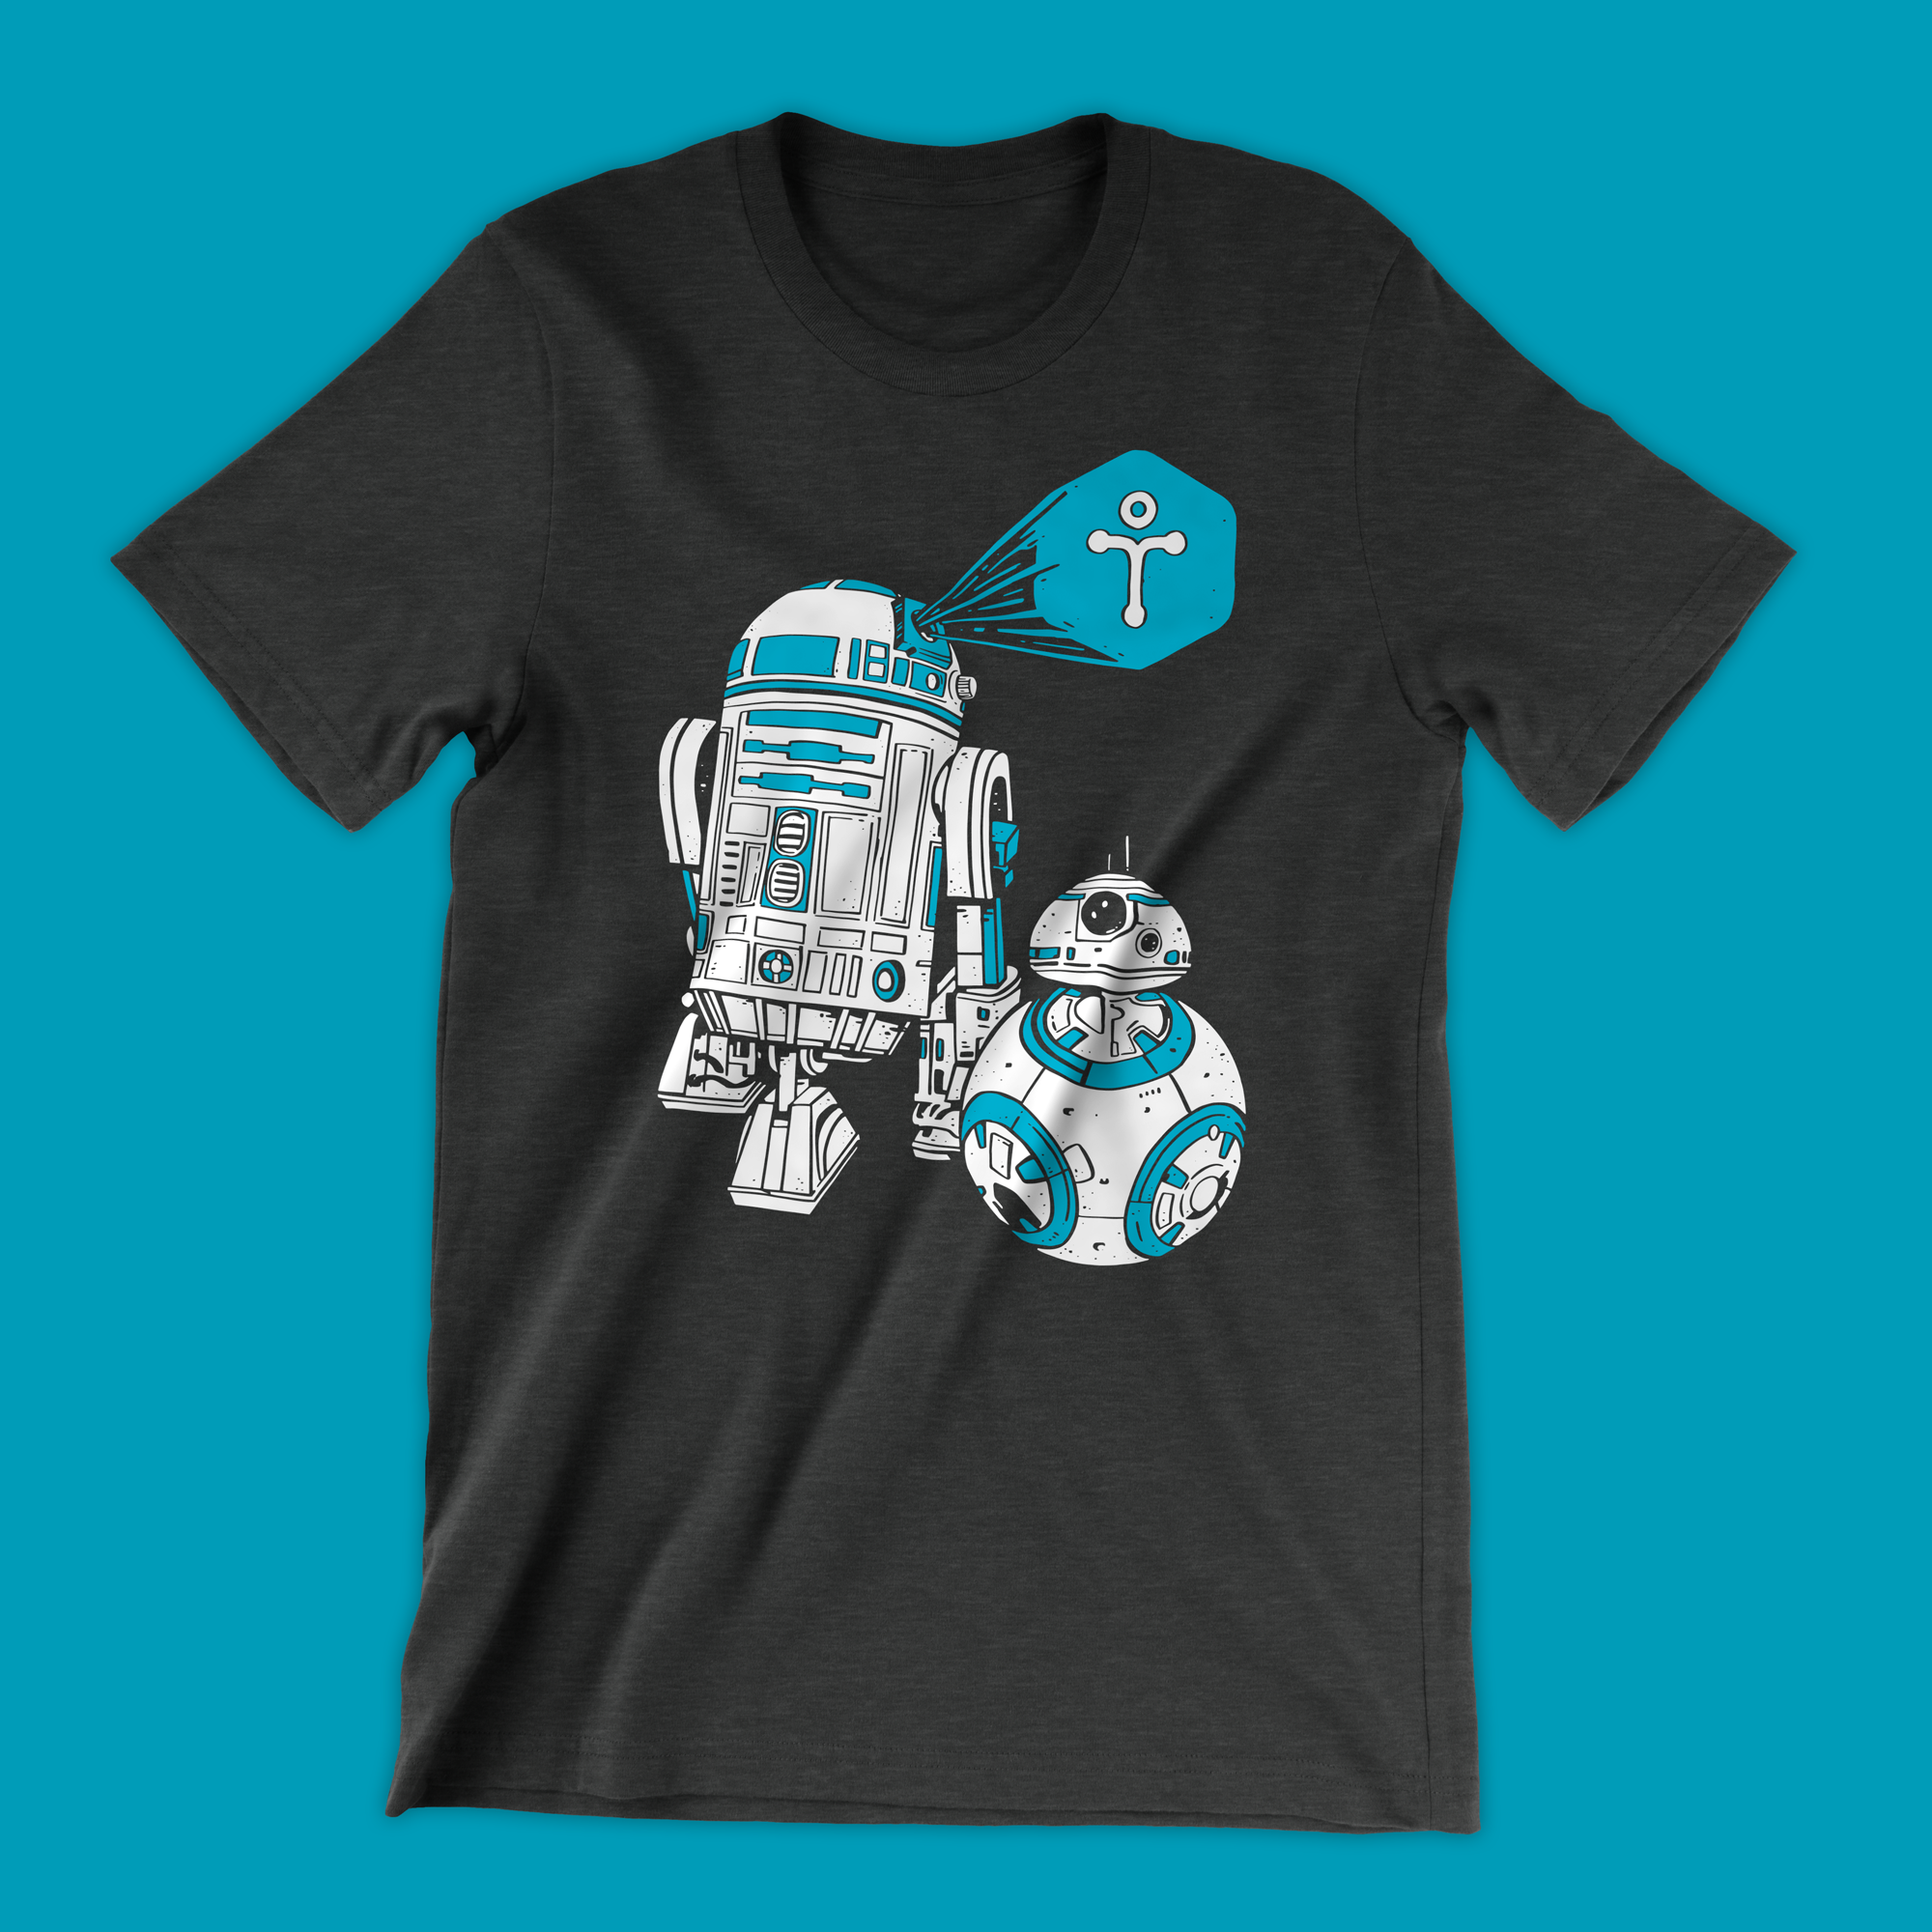 Sneak peak! Here's a look at the 2019 limited edition t-shirt designed by our friends at Yonder Clothing Co. - it will be available in adult and youth sizes!